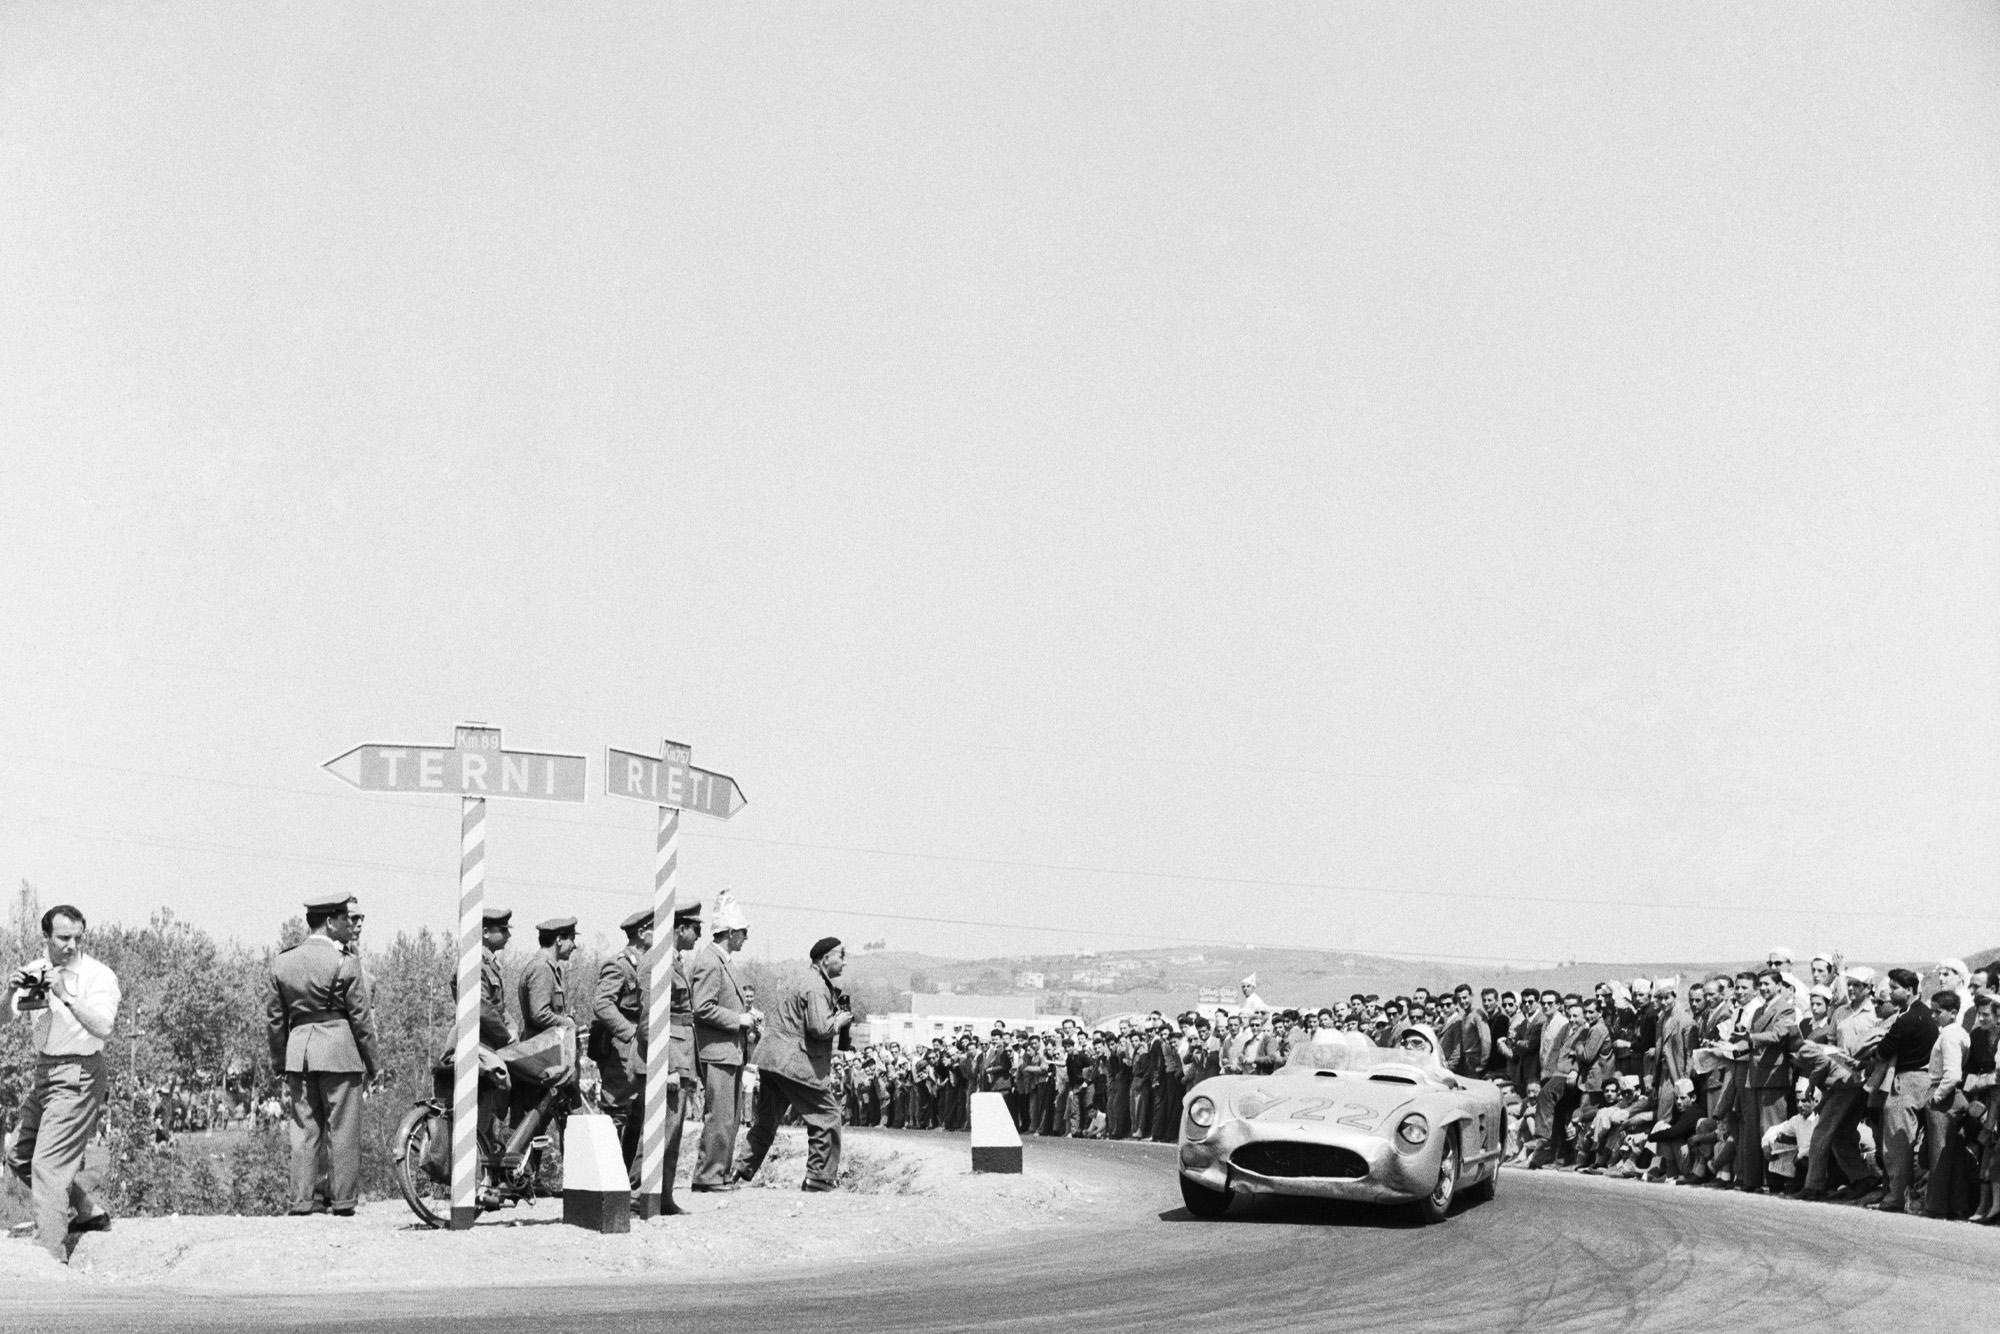 Stirling Moss rounds a corner in the 1955 Mile Miglia